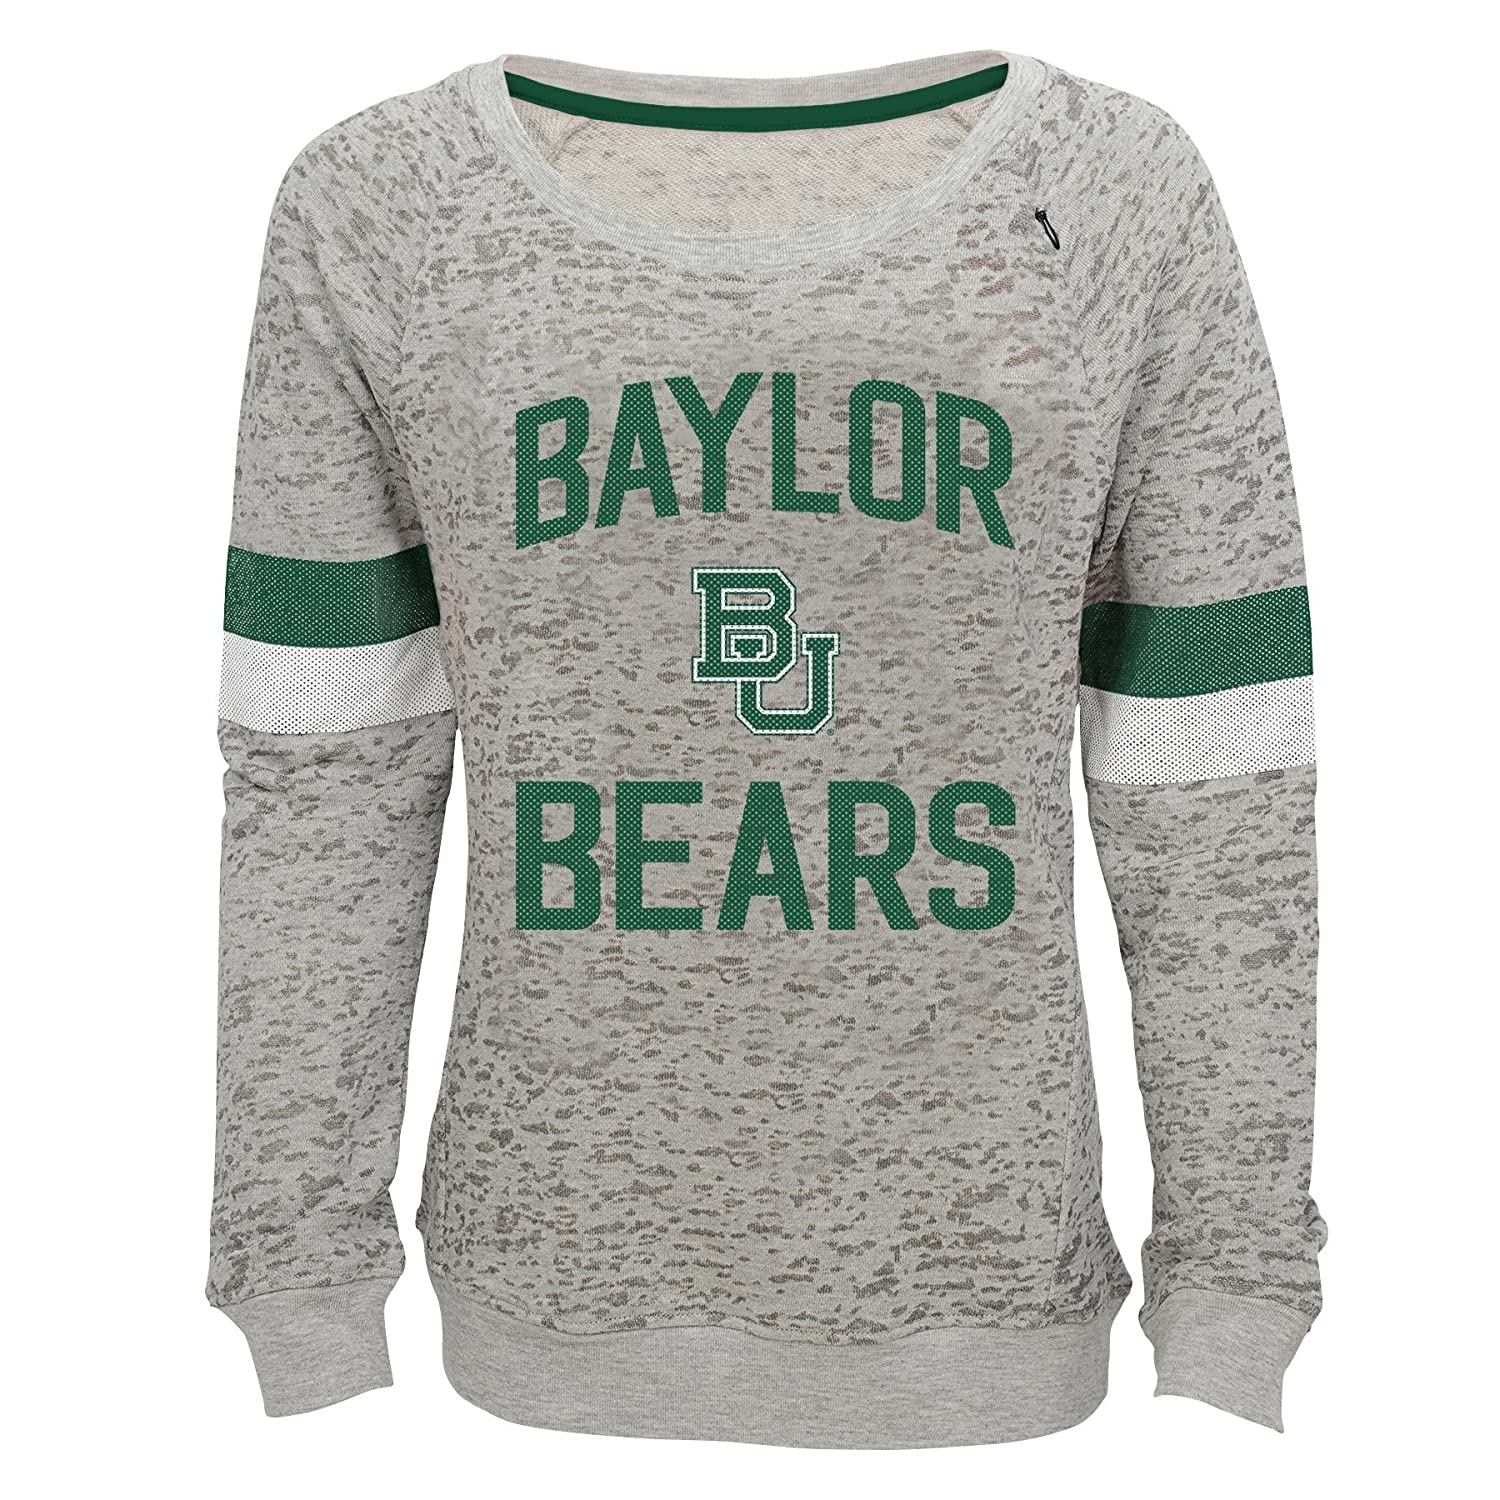 Youth Small 7-8 Heather Grey NCAA by Outerstuff NCAA Baylor Bears Youth Girls My City Boat Neck Pullover